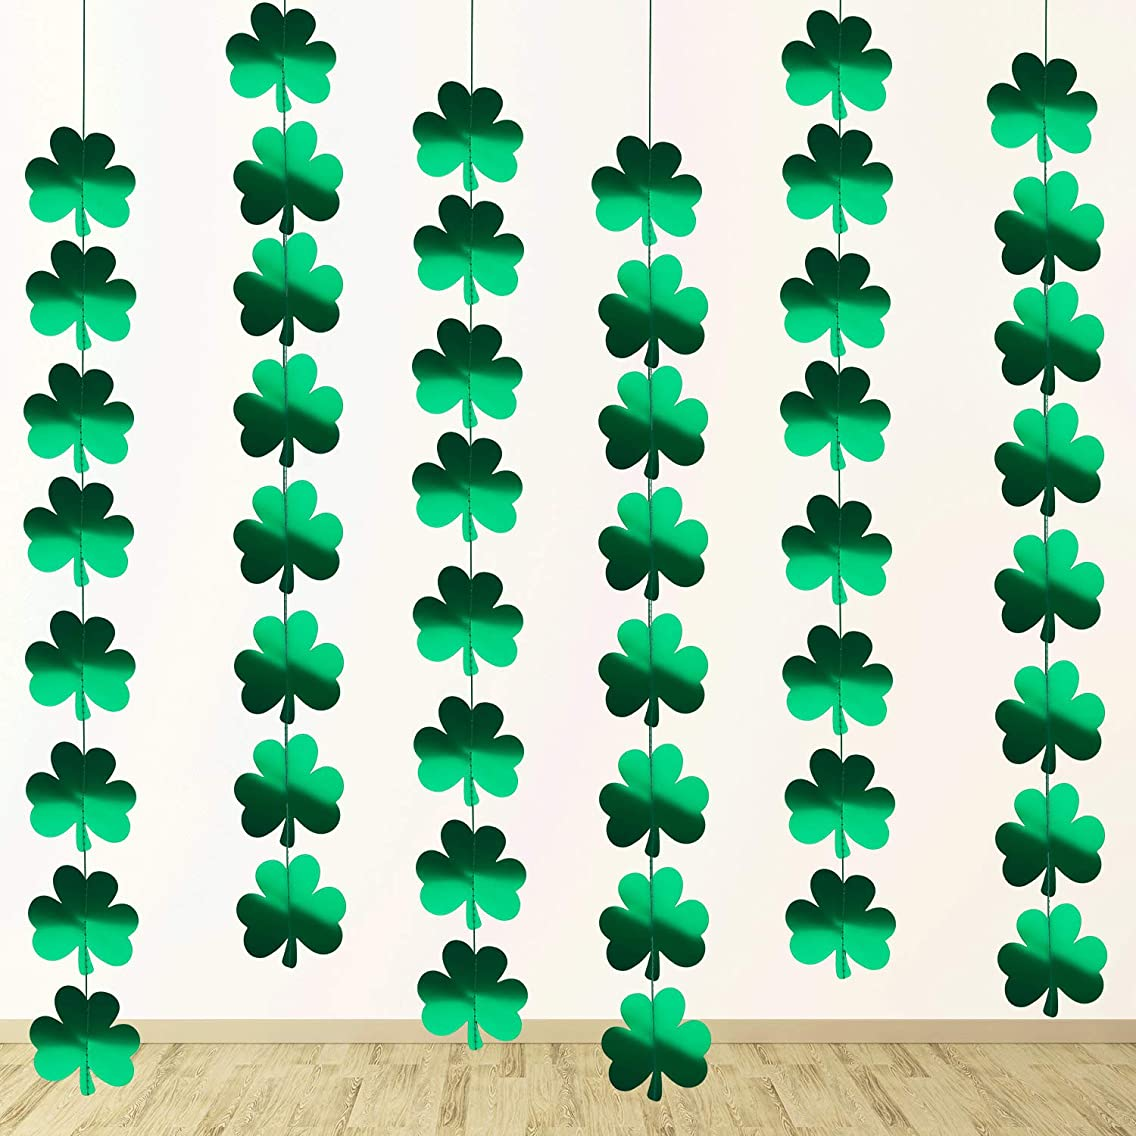 Zhanmai 48 Pieces Shamrock Clover Garland Banner Hanging Shamrock Garland PVC Clover Banner for Party Supplies St. Patrick's Day Decoration (Small Style B)